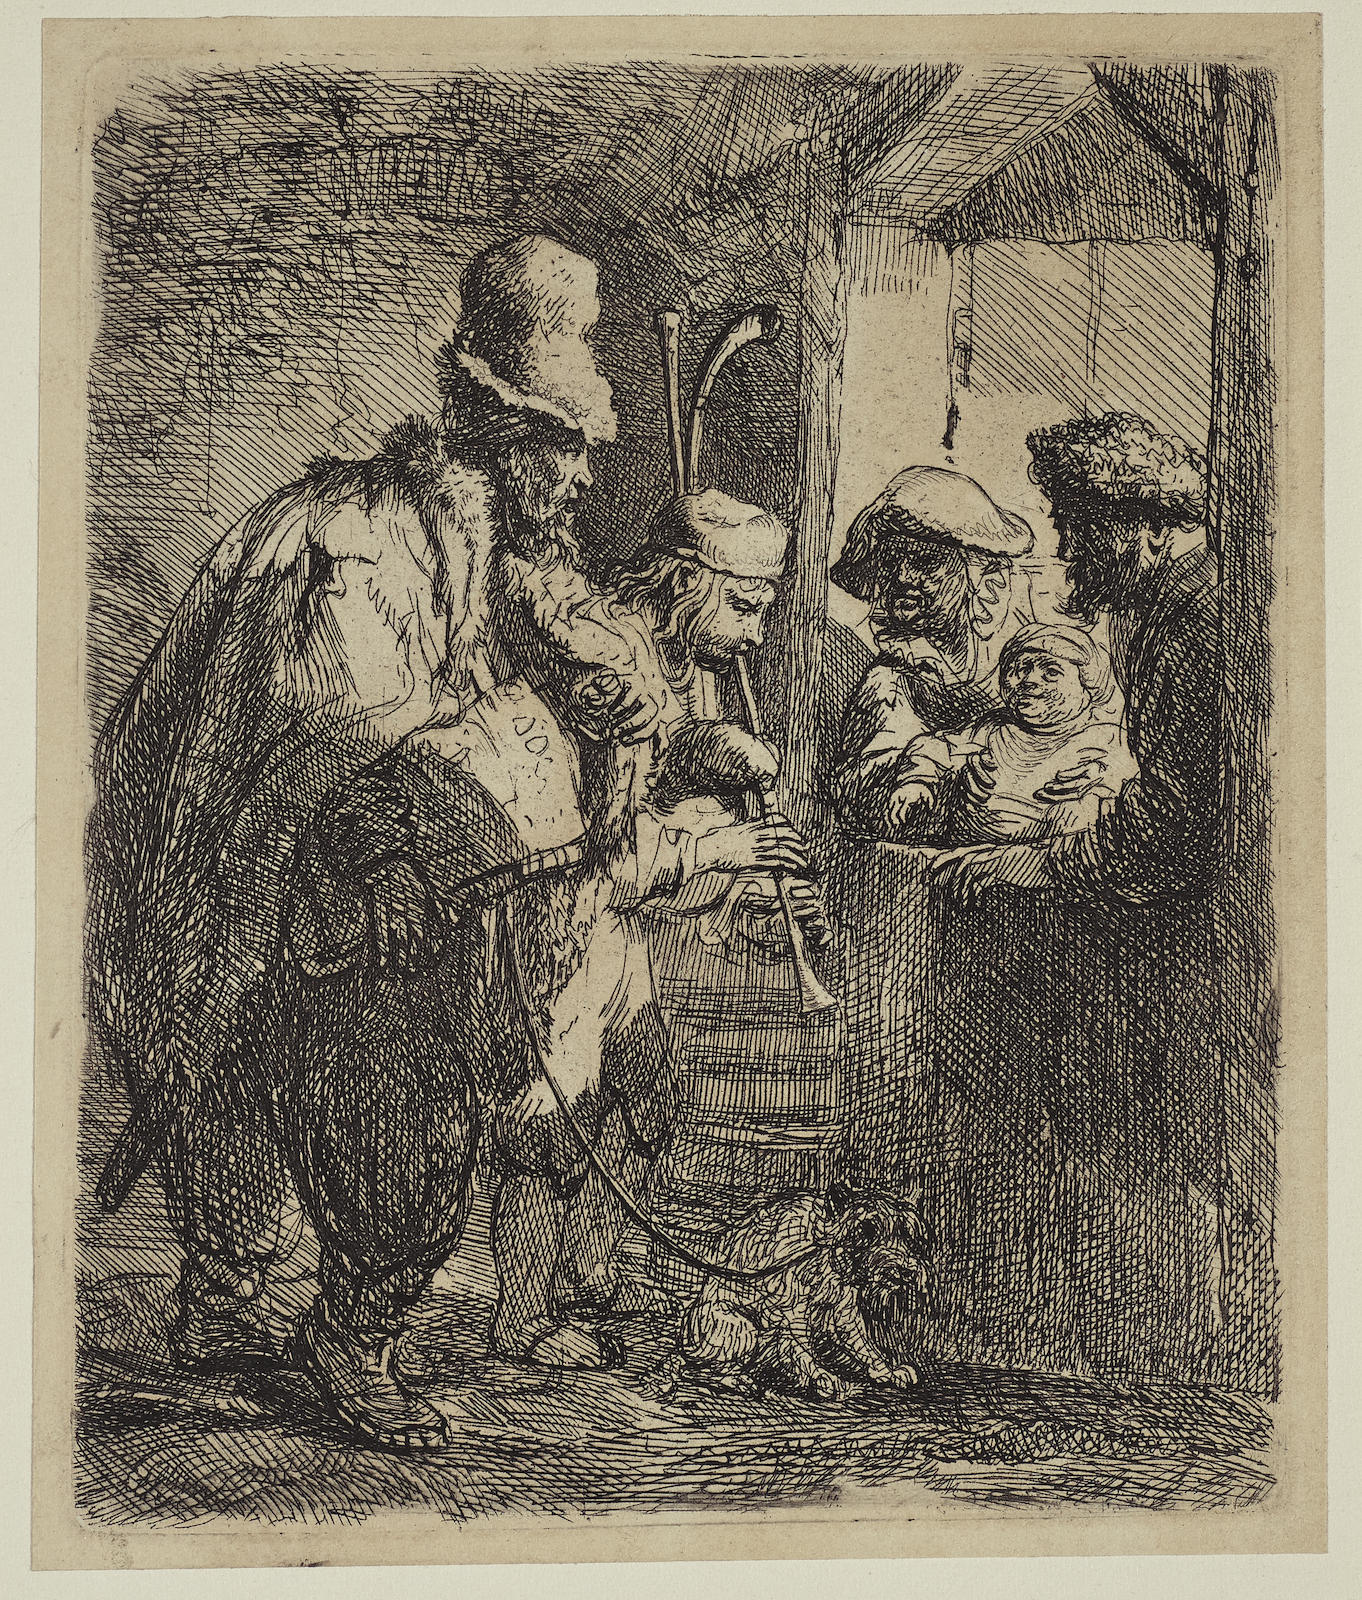 Rembrandt van Rijn-The Strolling Musicians (B., Holl. 119; H. 142; New Holl. 141)-1635